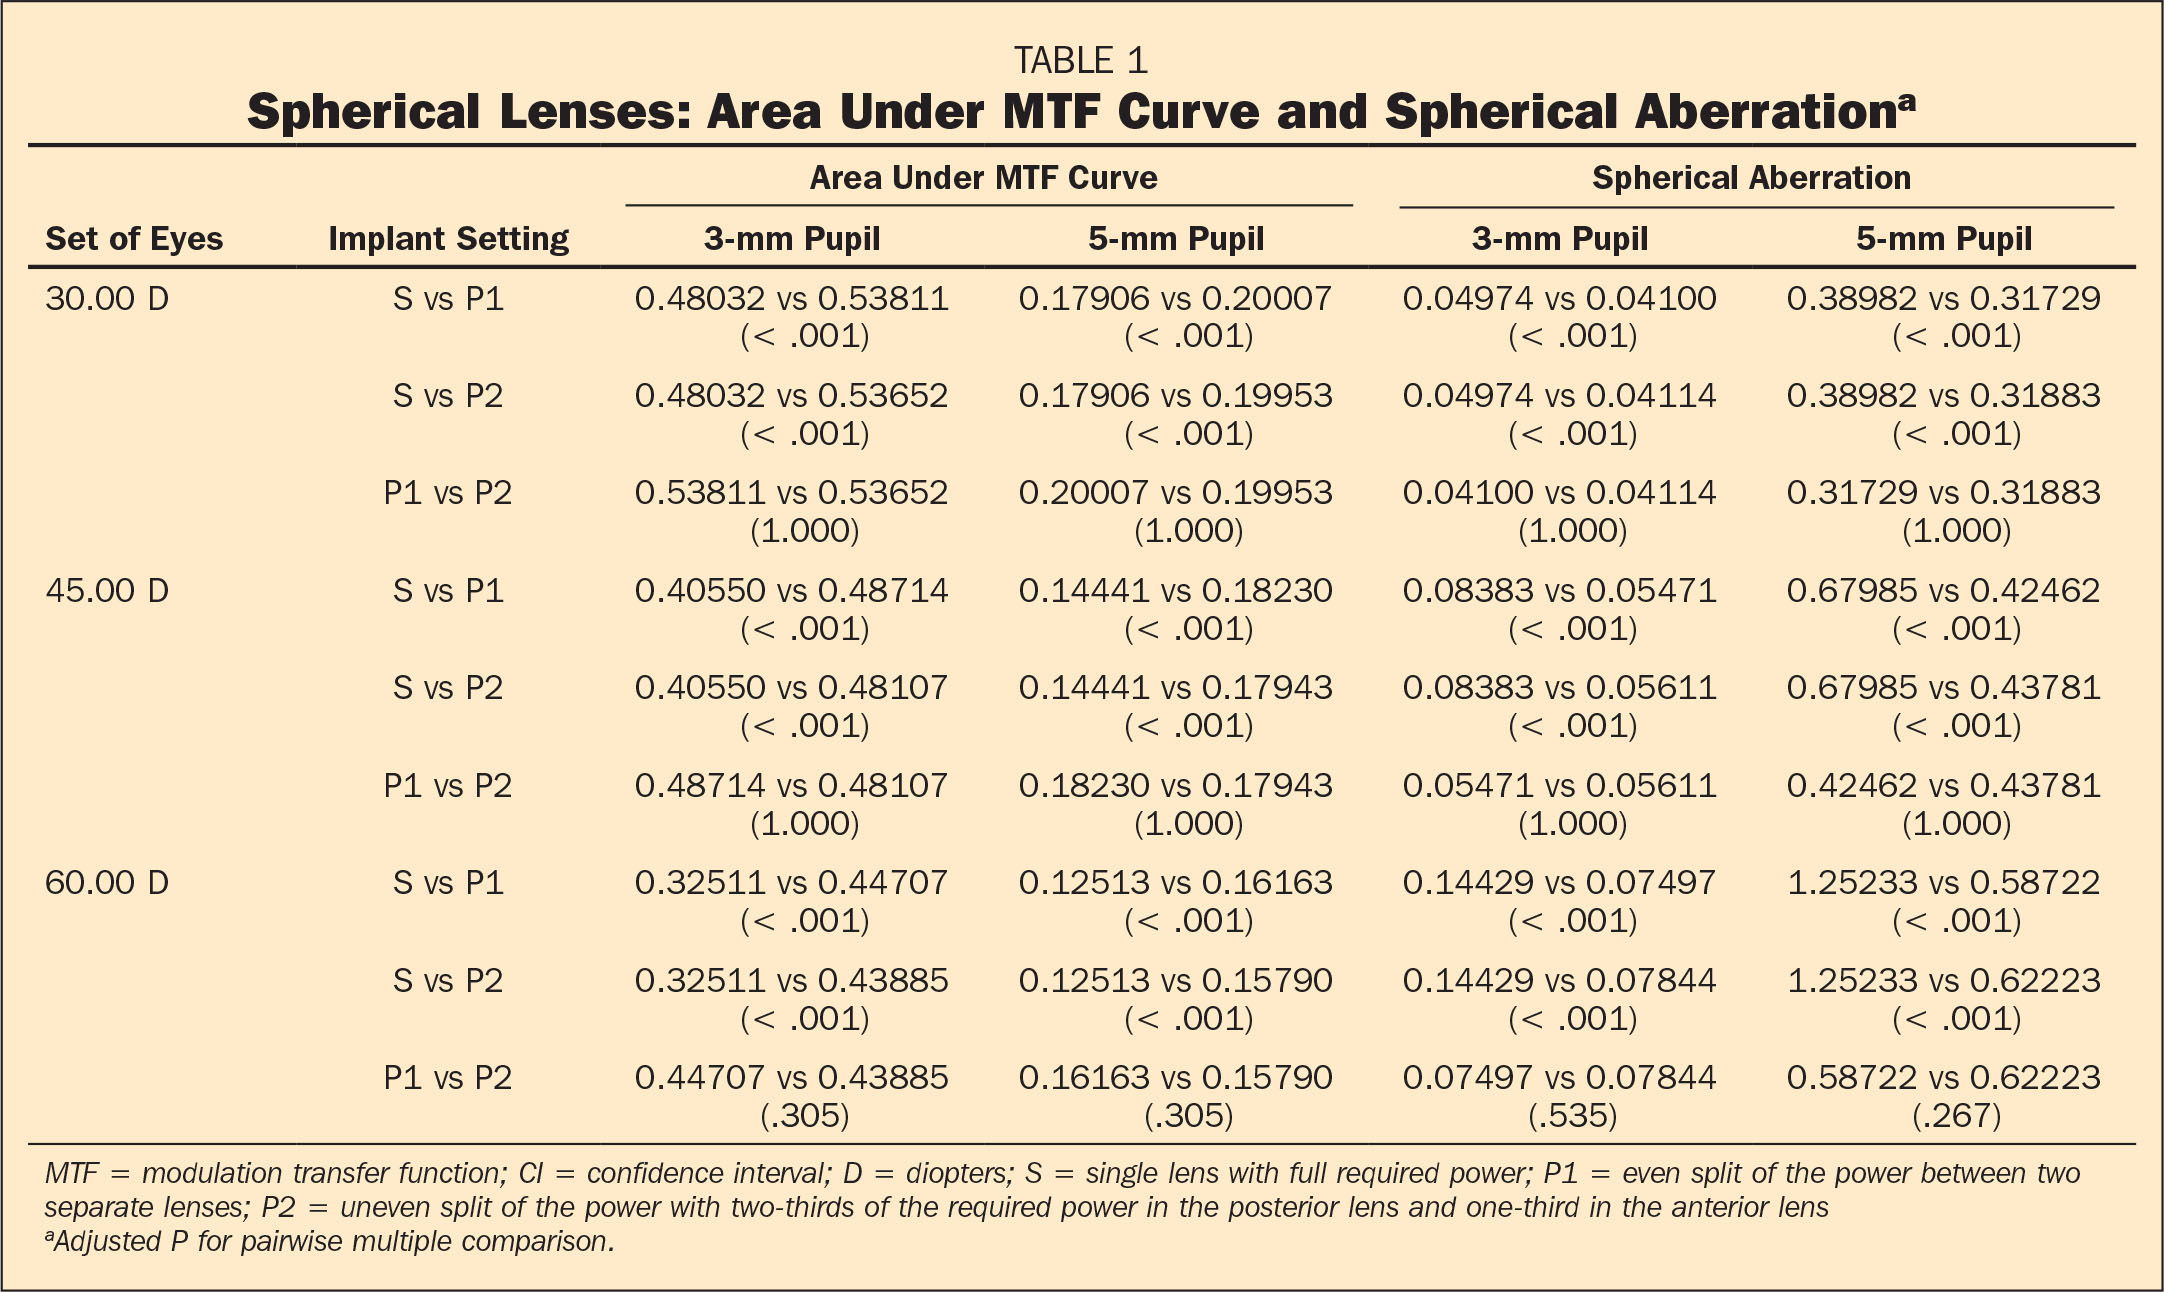 Spherical Lenses: Area Under MTF Curve and Spherical Aberrationa